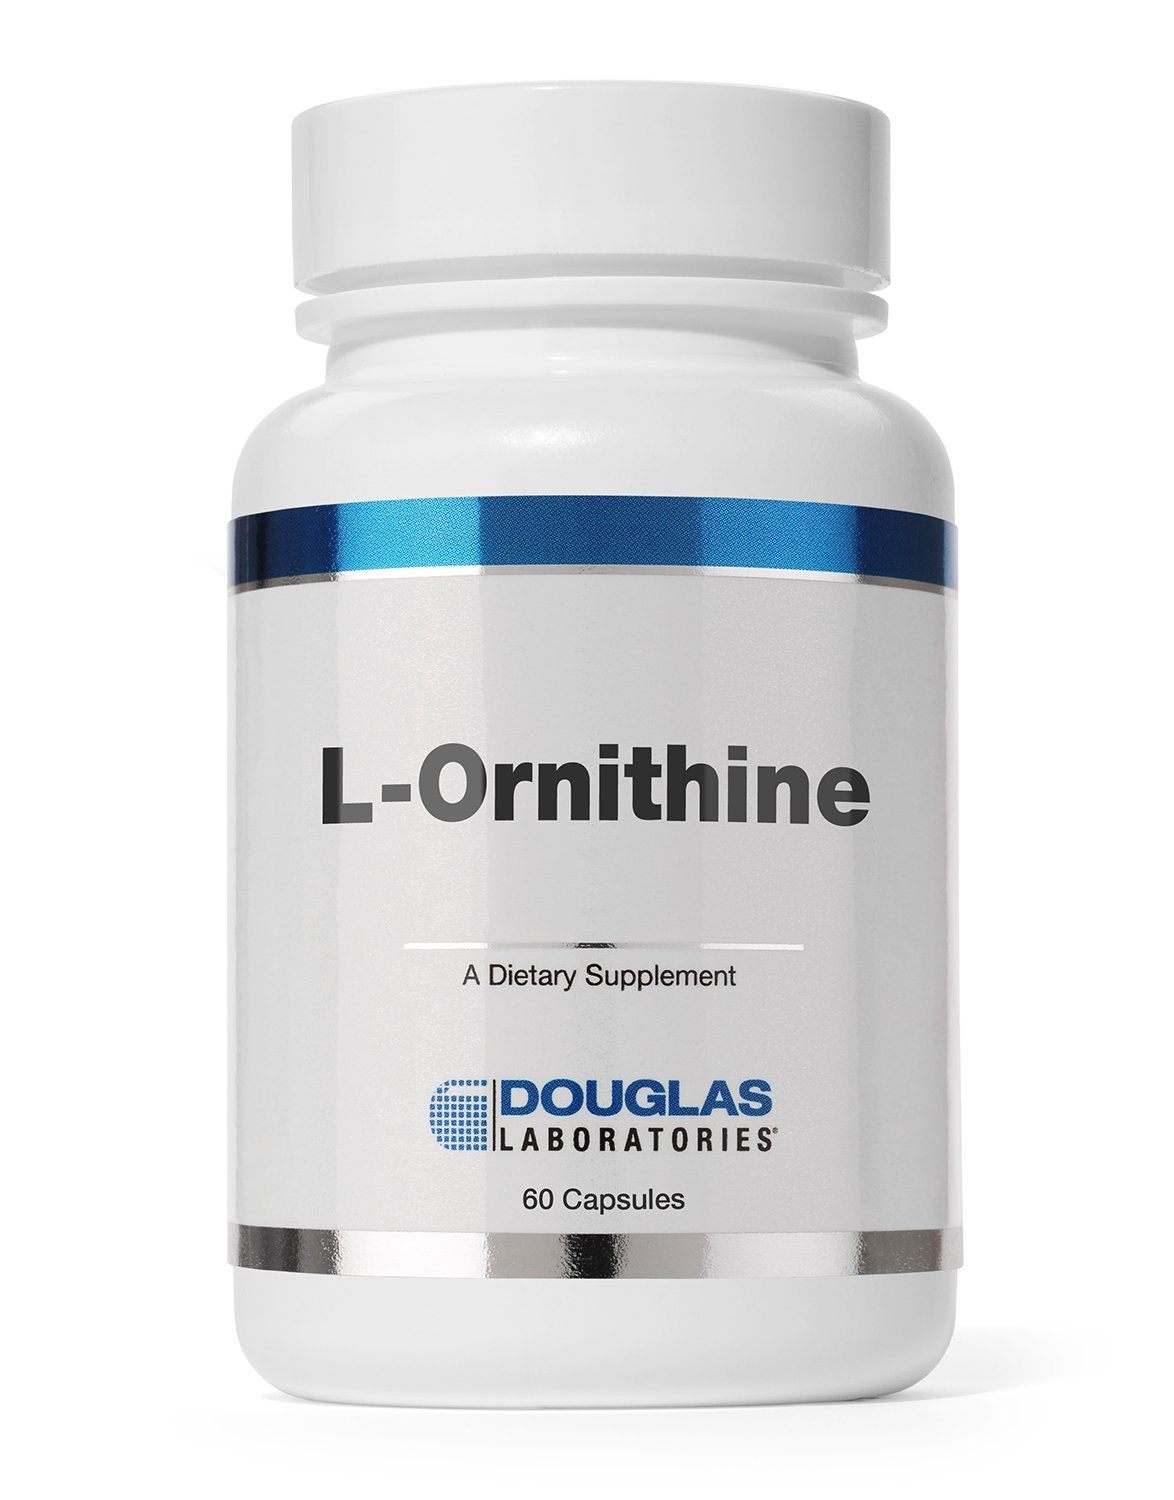 Douglas Laboratories - L-Ornithine - Supports Wound Healing, Hormones and Gastrointestinal Functioning* - 60 Capsules by Douglas Laboratories